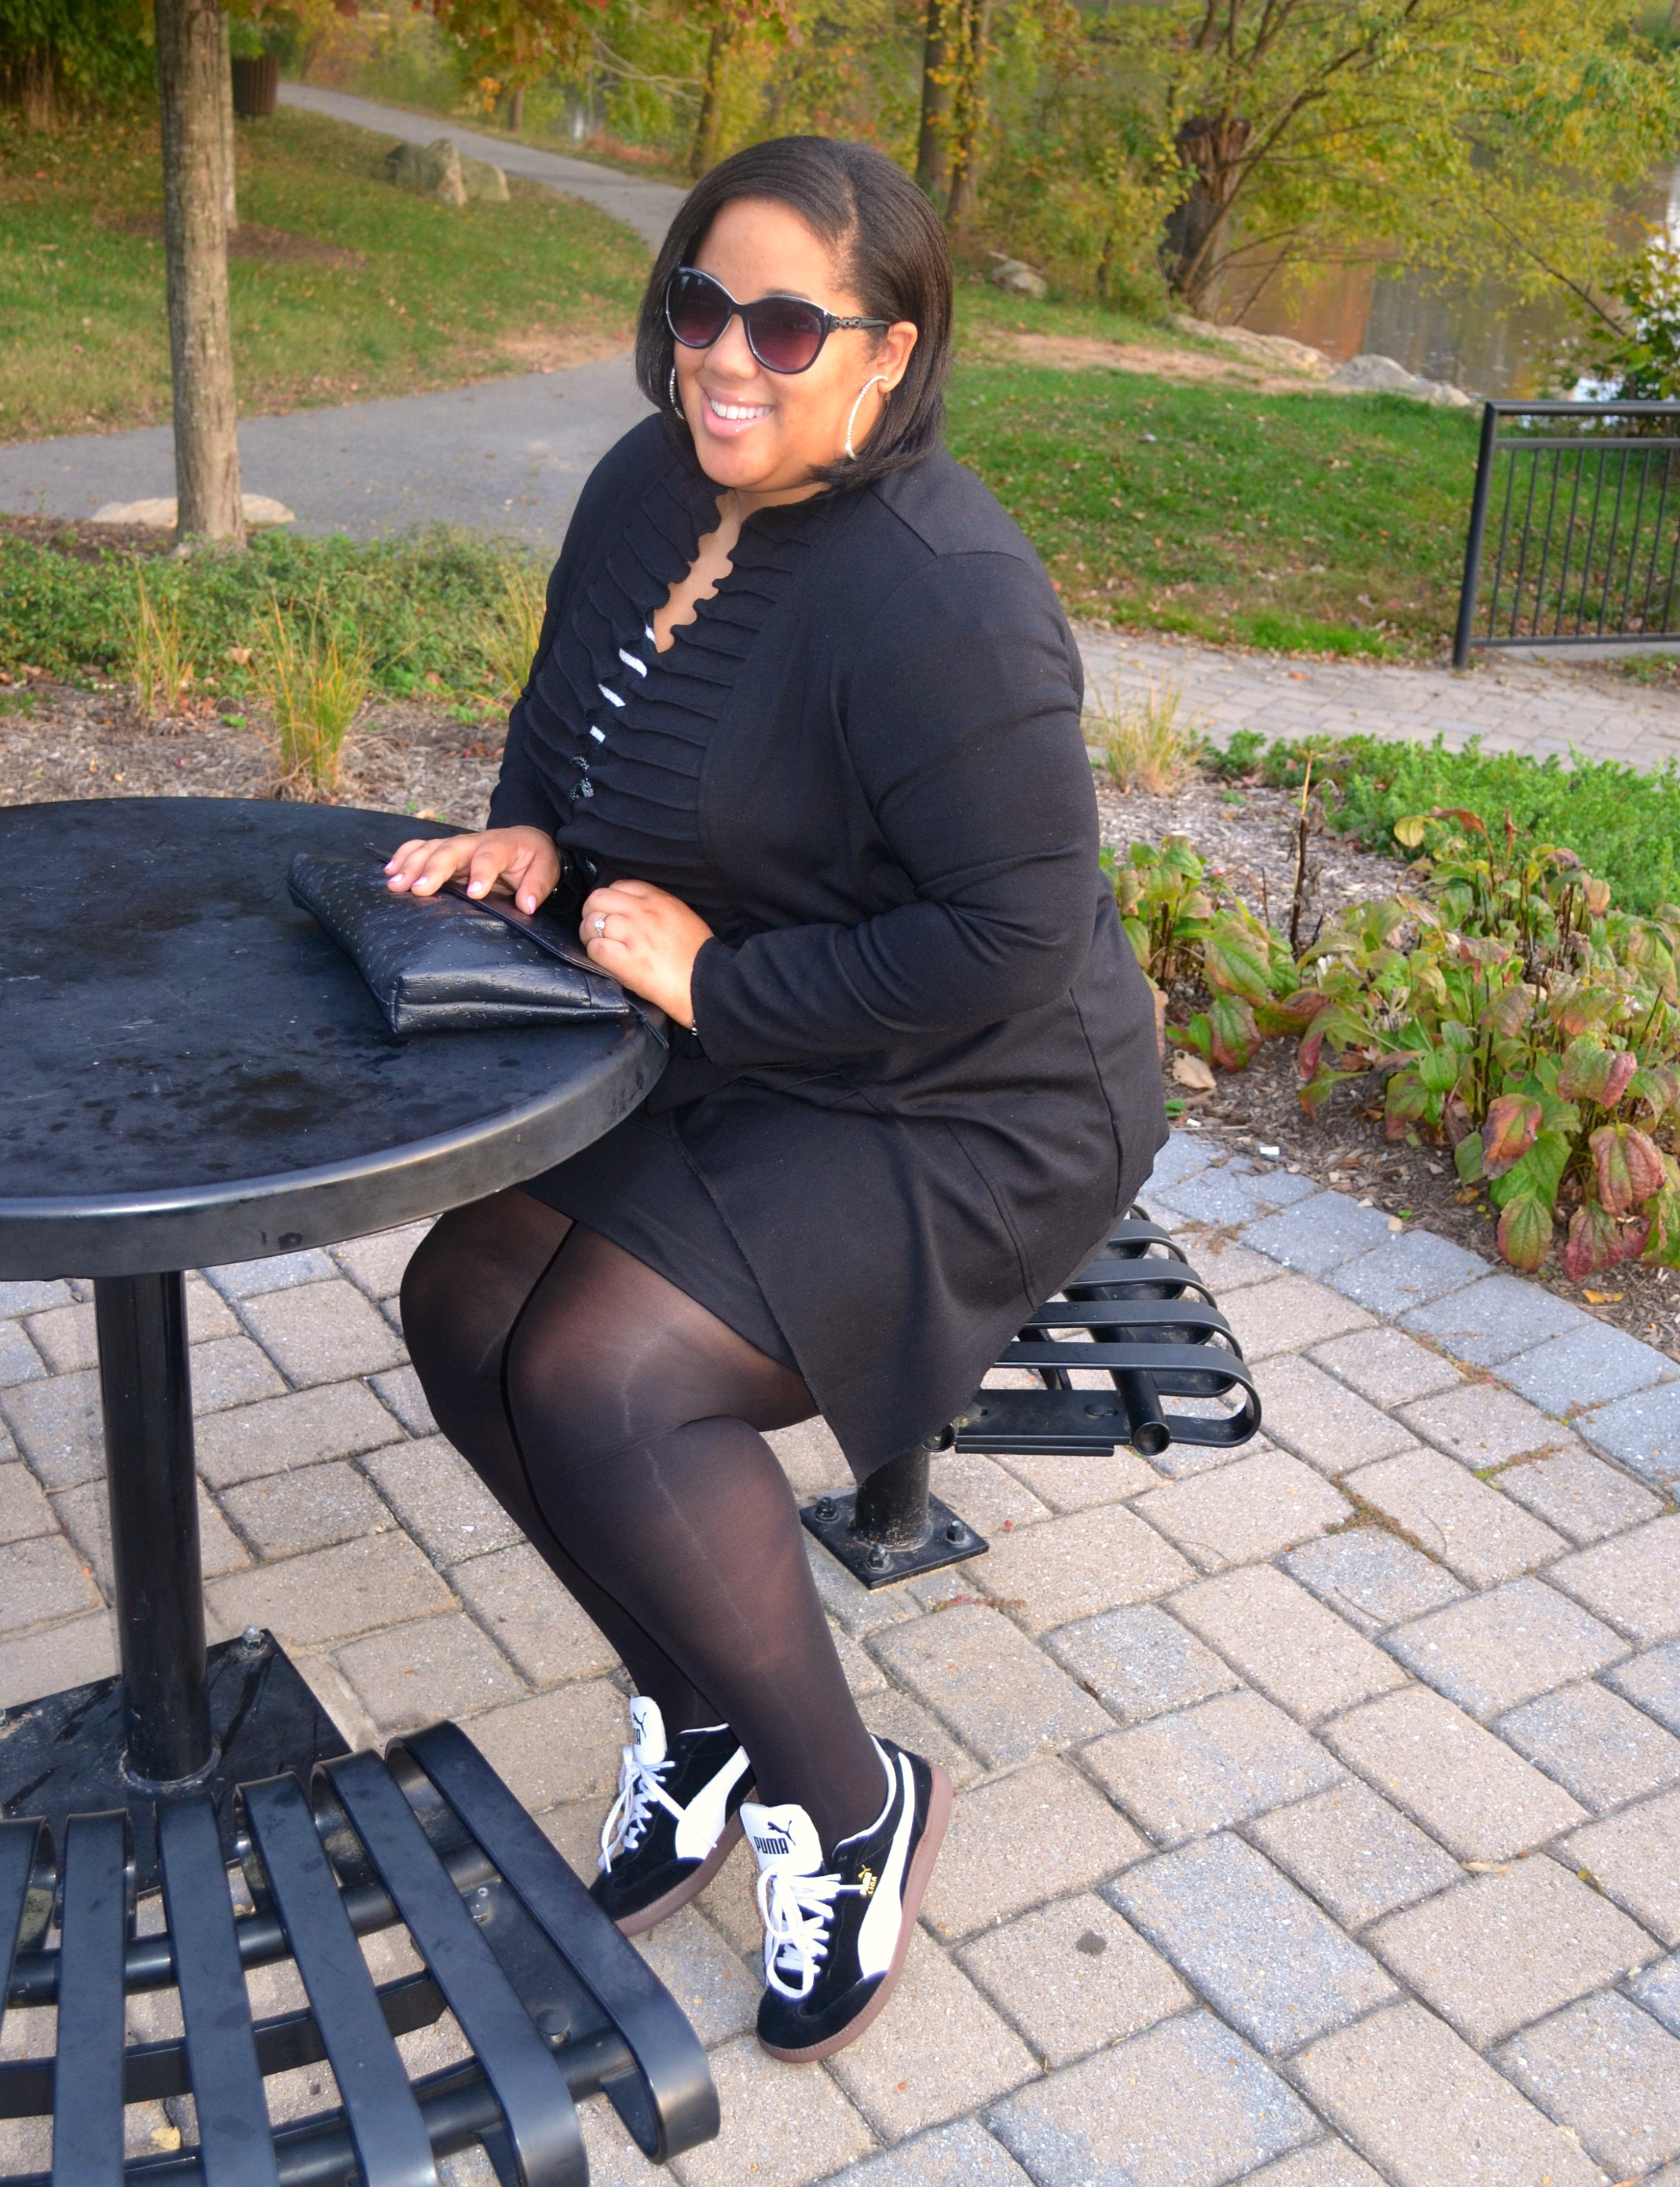 Plus Size Style Archives - Page 7 of 7 - Whitney Nic James